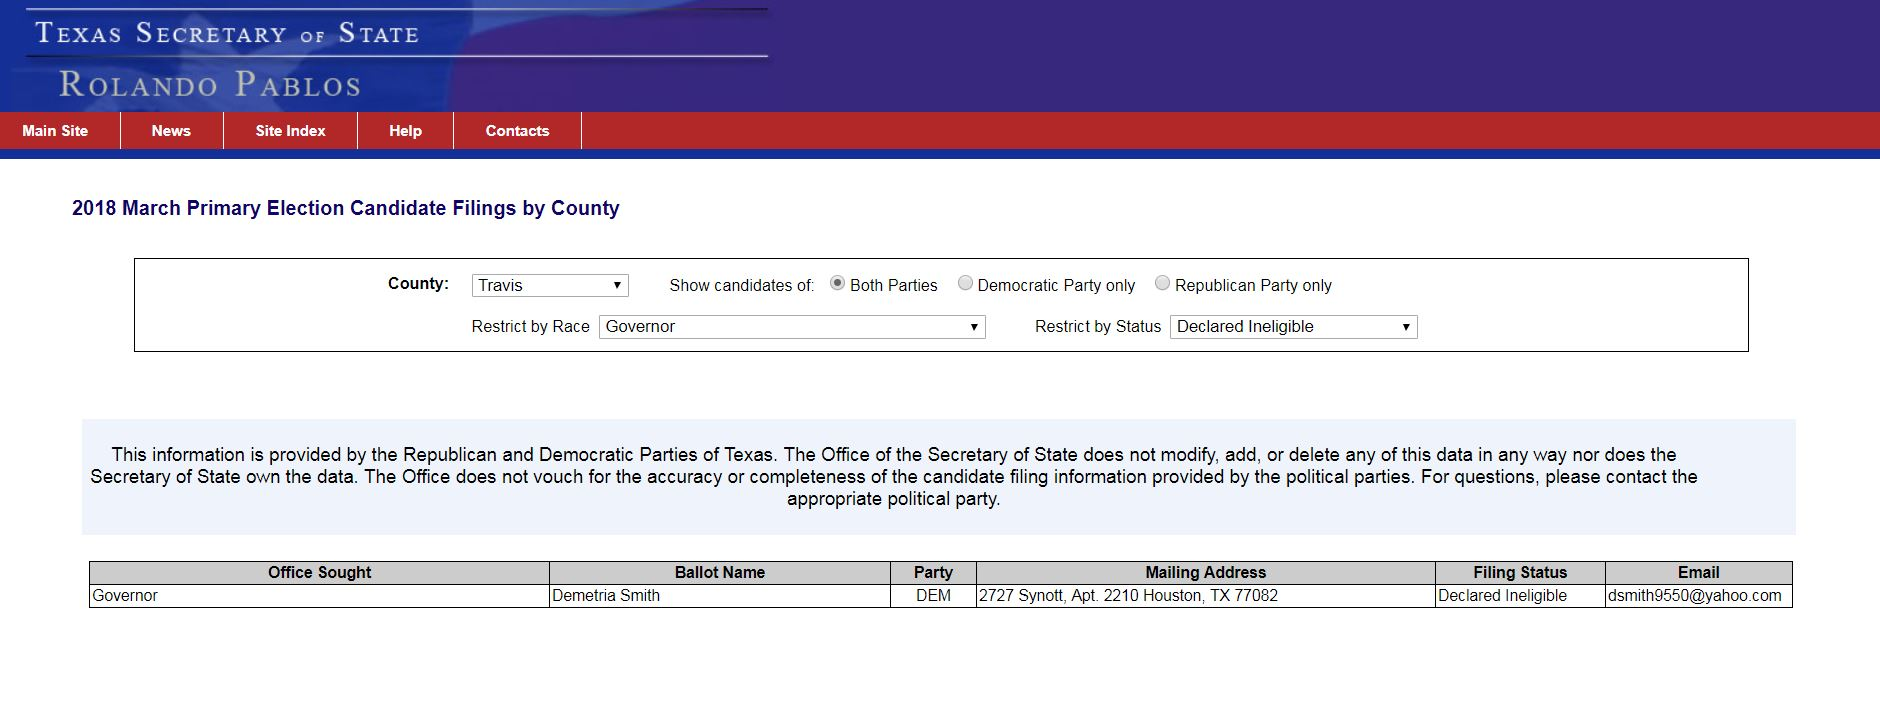 """Information on the Texas Secretary of State's website indicating that democratic gubernatorial candidate Demetria Smith was """"declared ineligible"""". (Photo: Texas Secretary of State website)"""